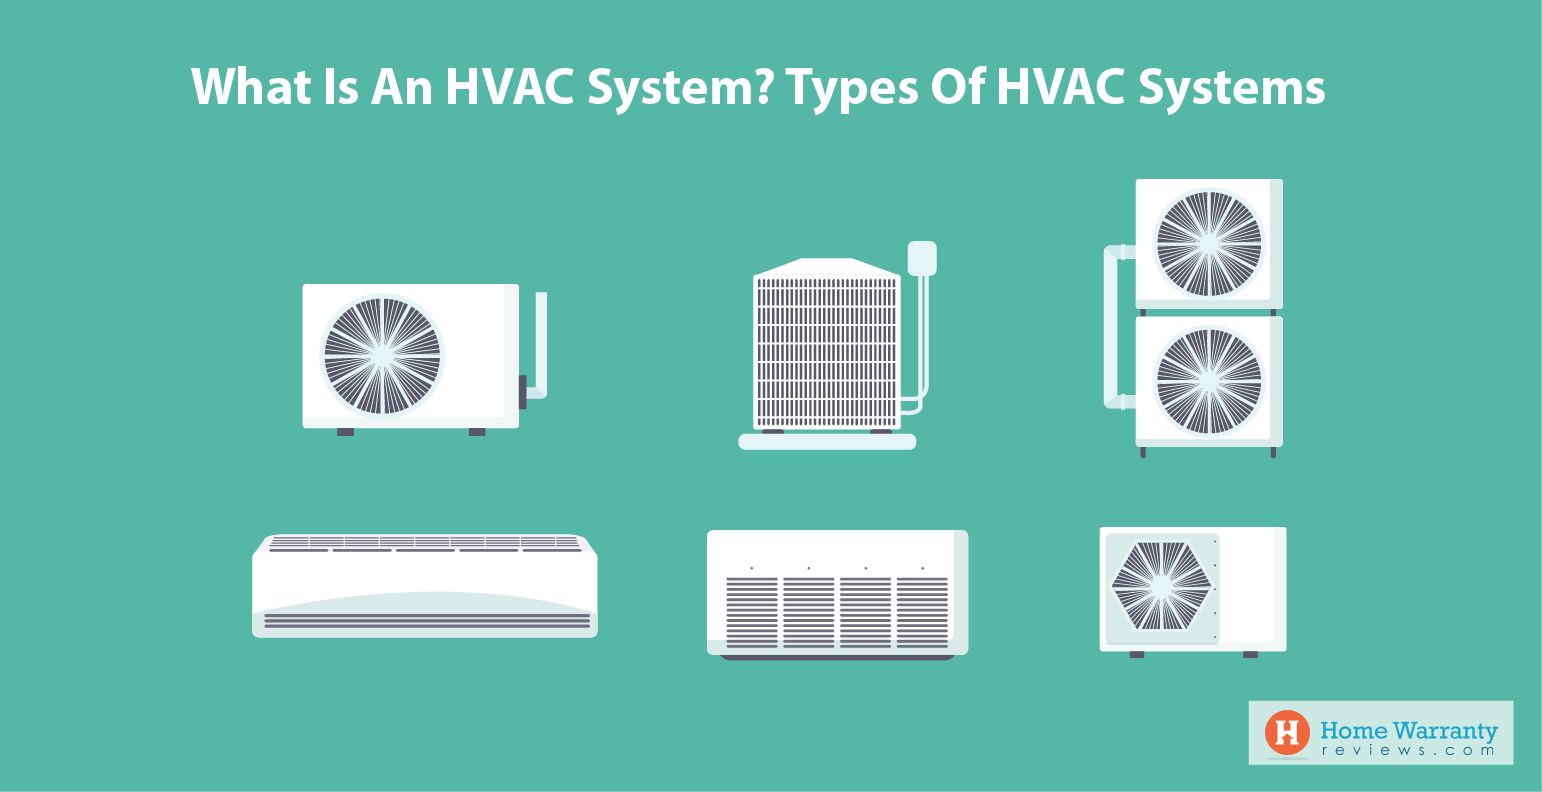 What Is An HVAC System? Types Of HVAC Systems